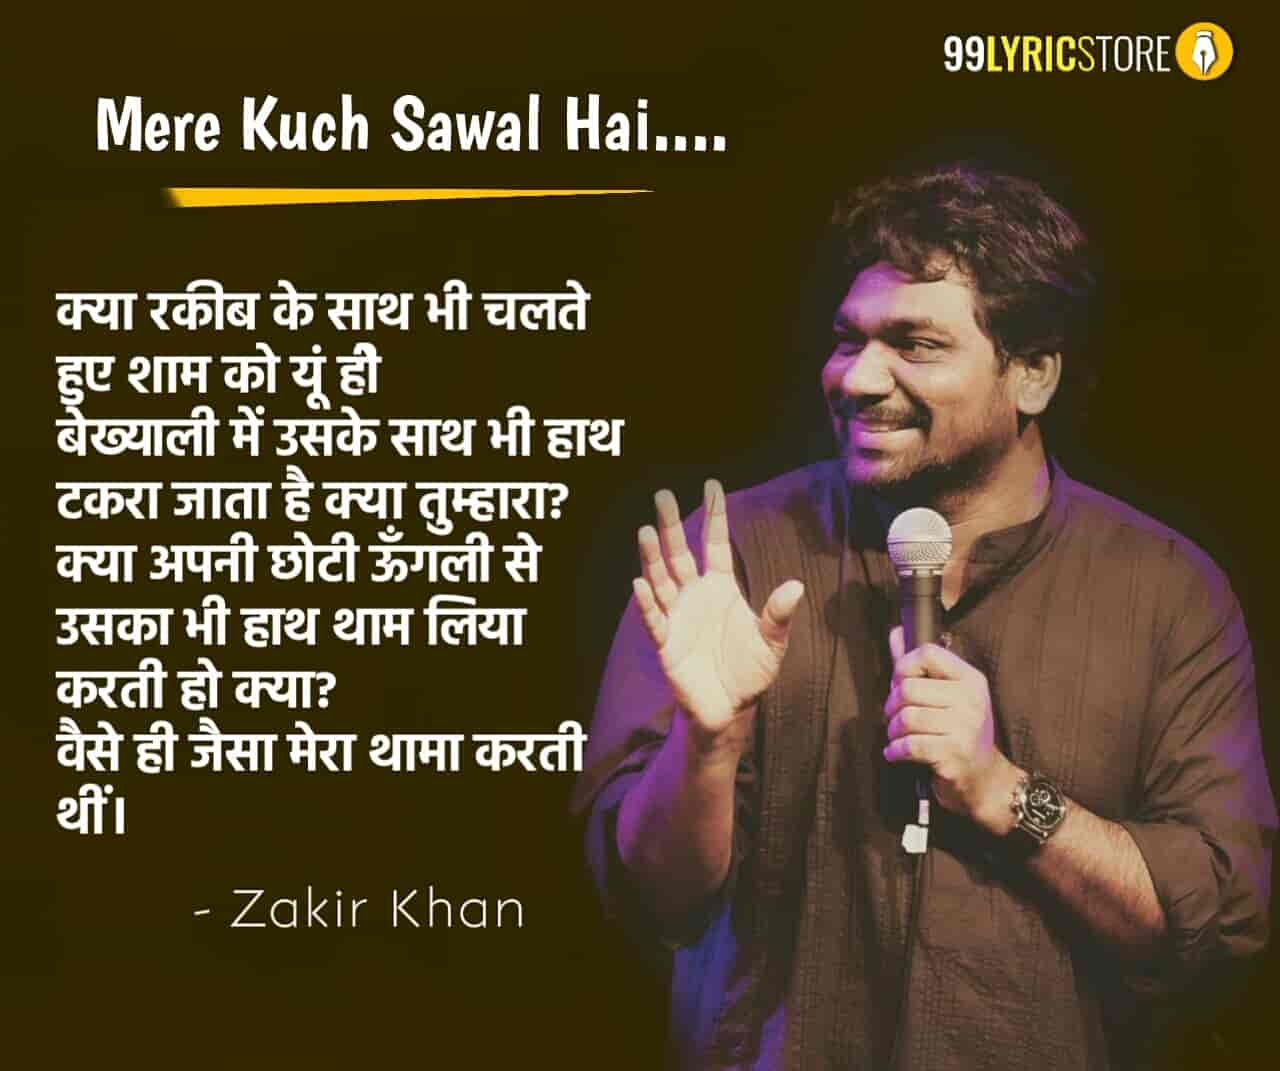 This Beautiful Poetry 'Mere Kuch Sawal Hai' which is written and Performed by Zakir Khan.